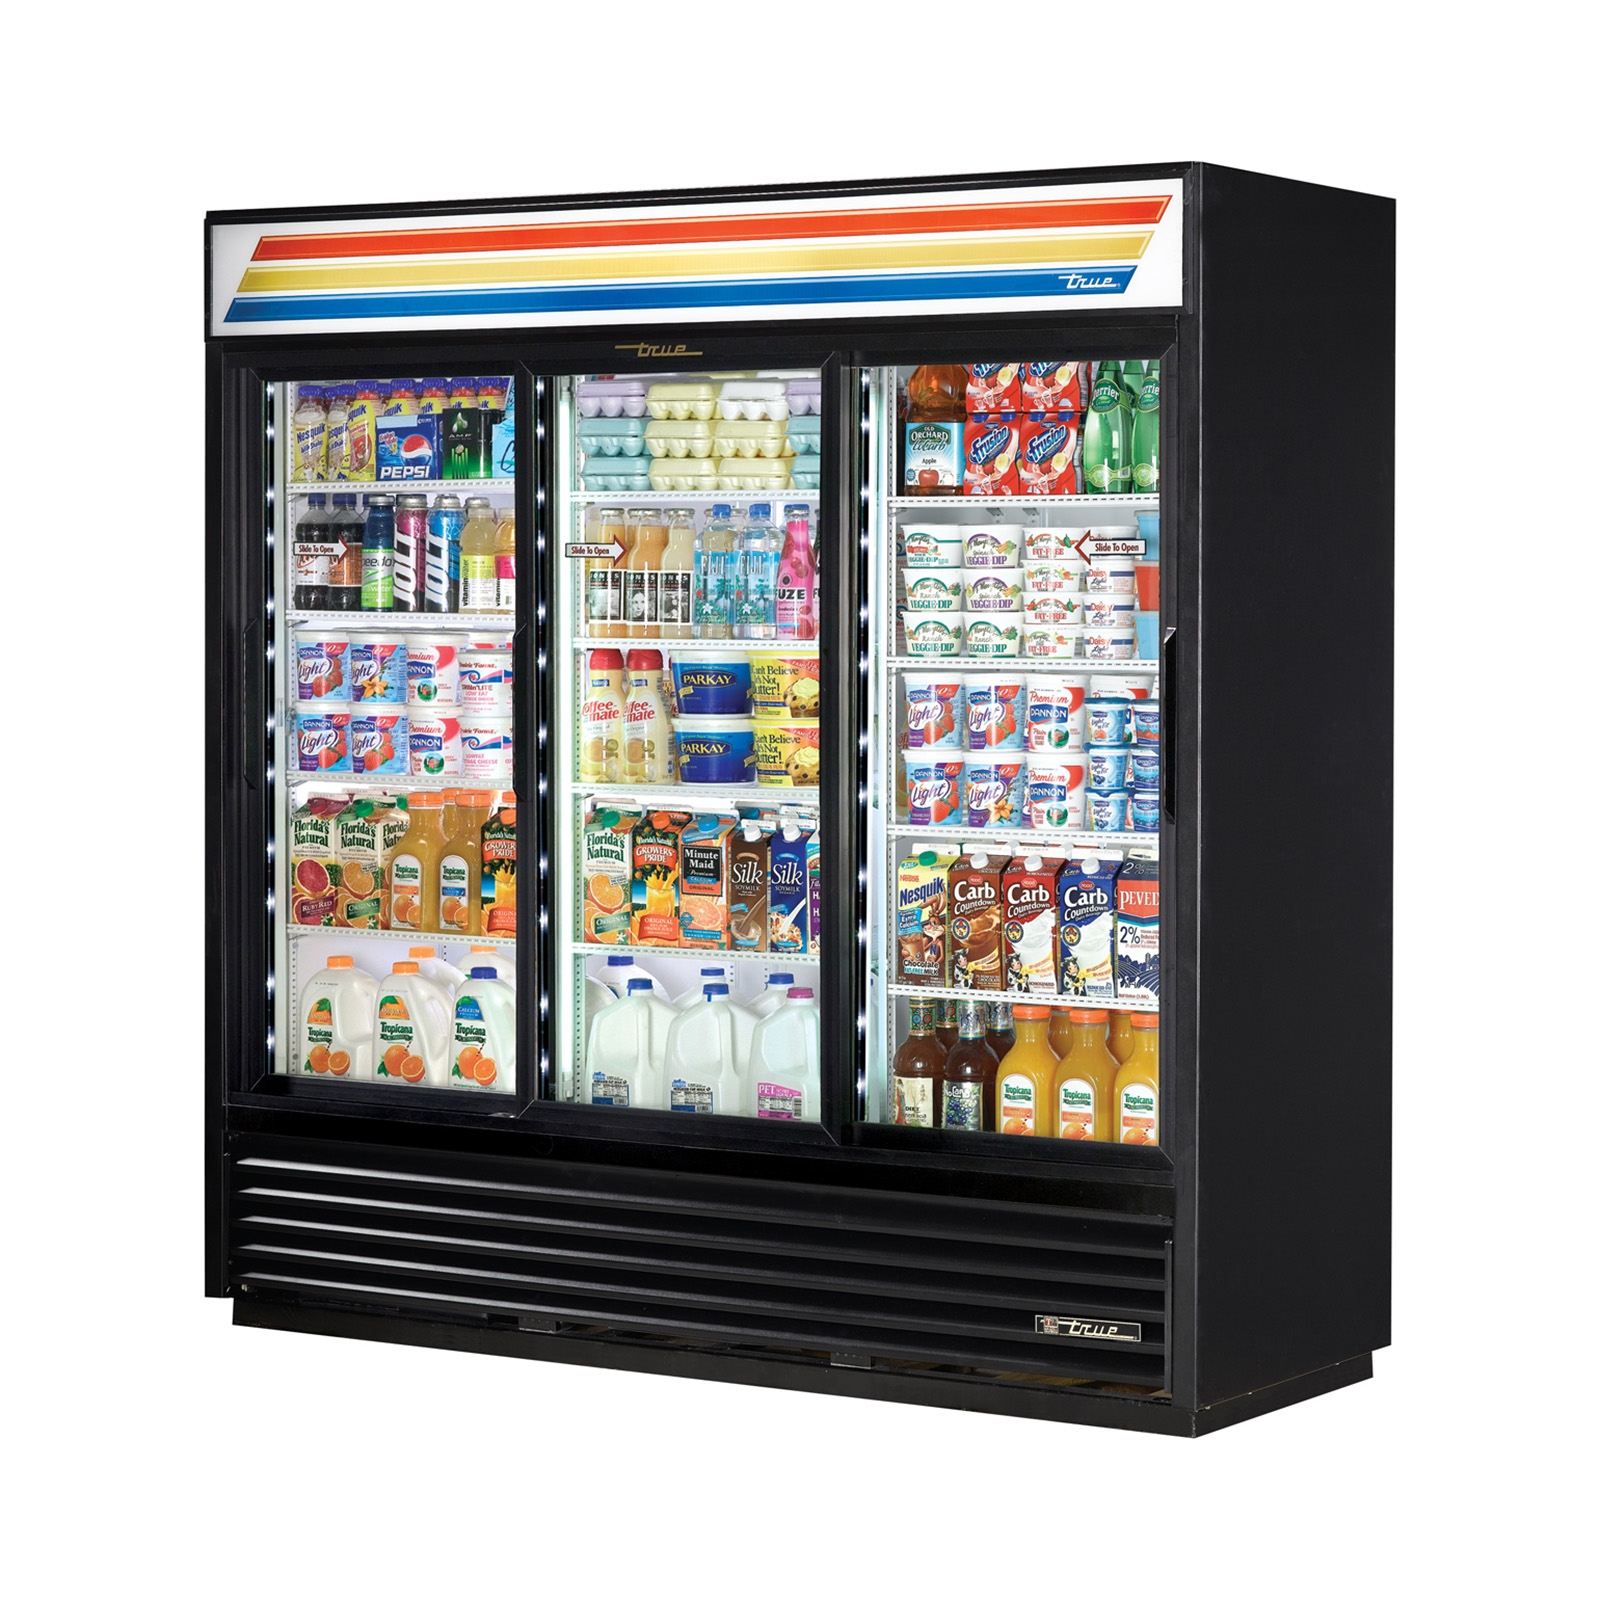 GDM-69-LD – True Display Refrigerator